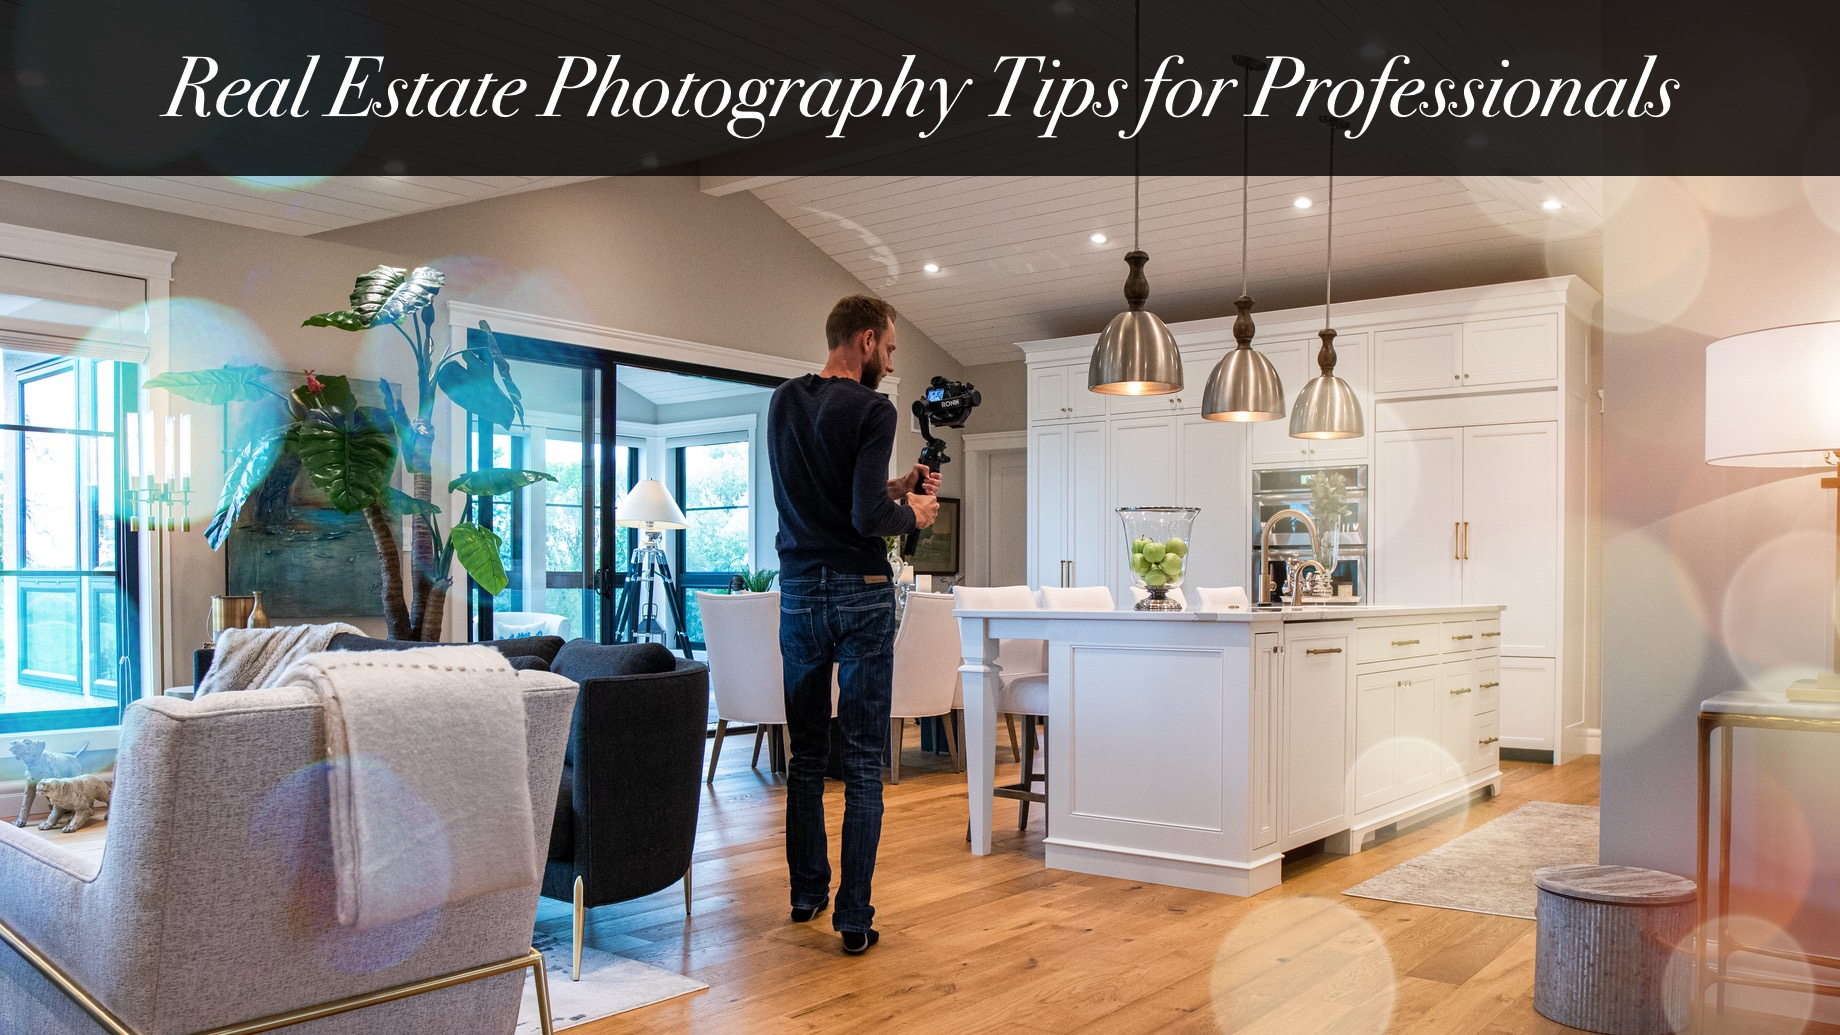 Real Estate Photography Tips for Professionals